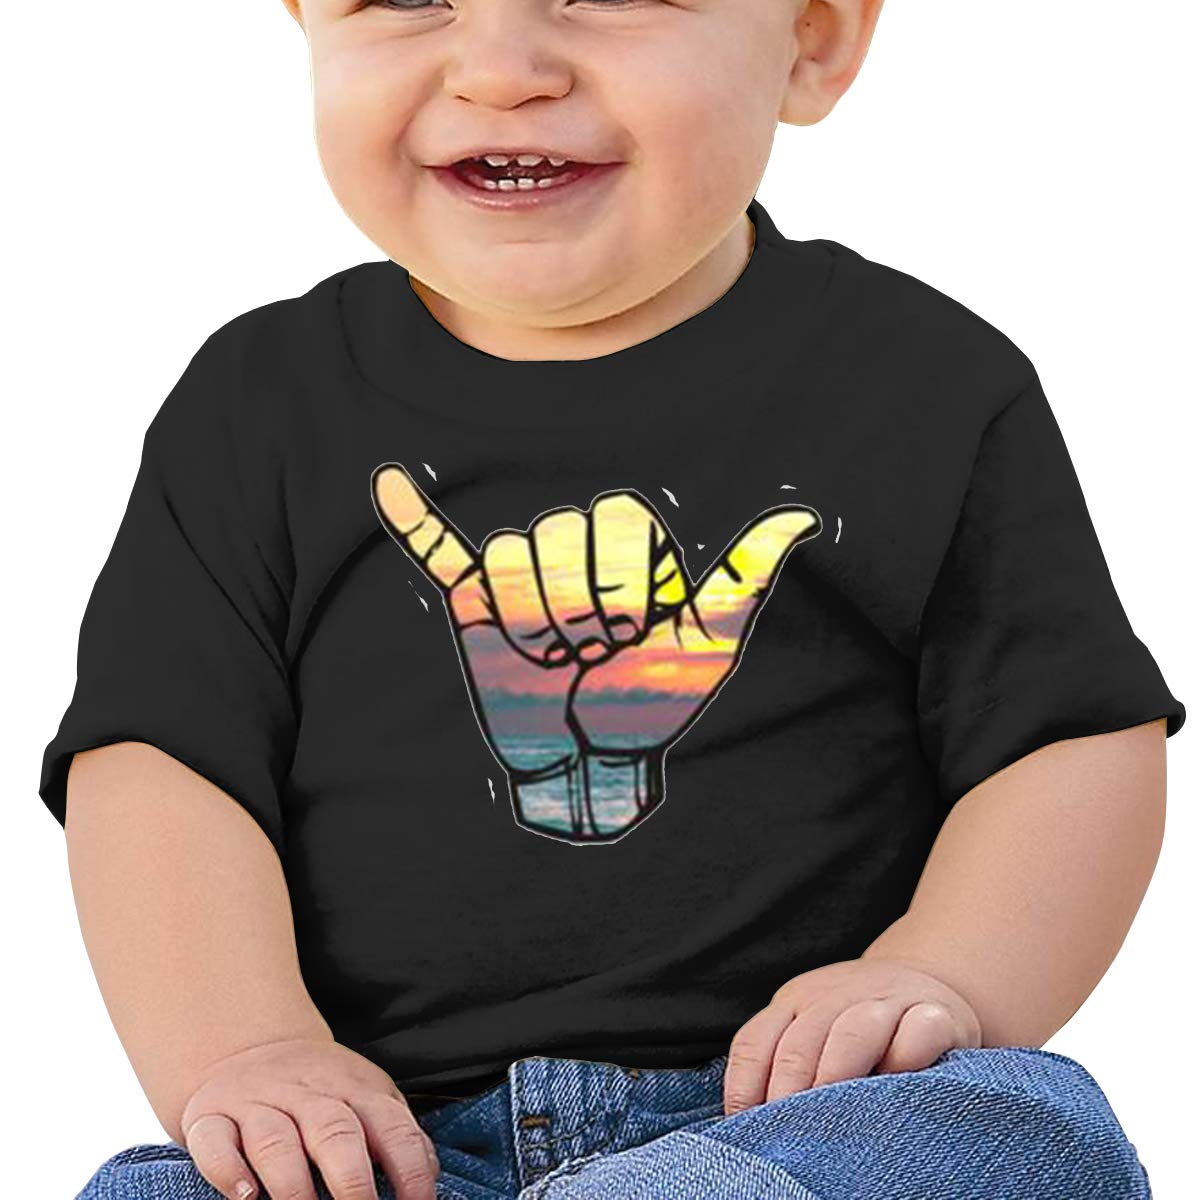 Rocker Toddler Short-Sleeve Tee for Boy Girl Infant Kids T-Shirt On Newborn 6-18 Months